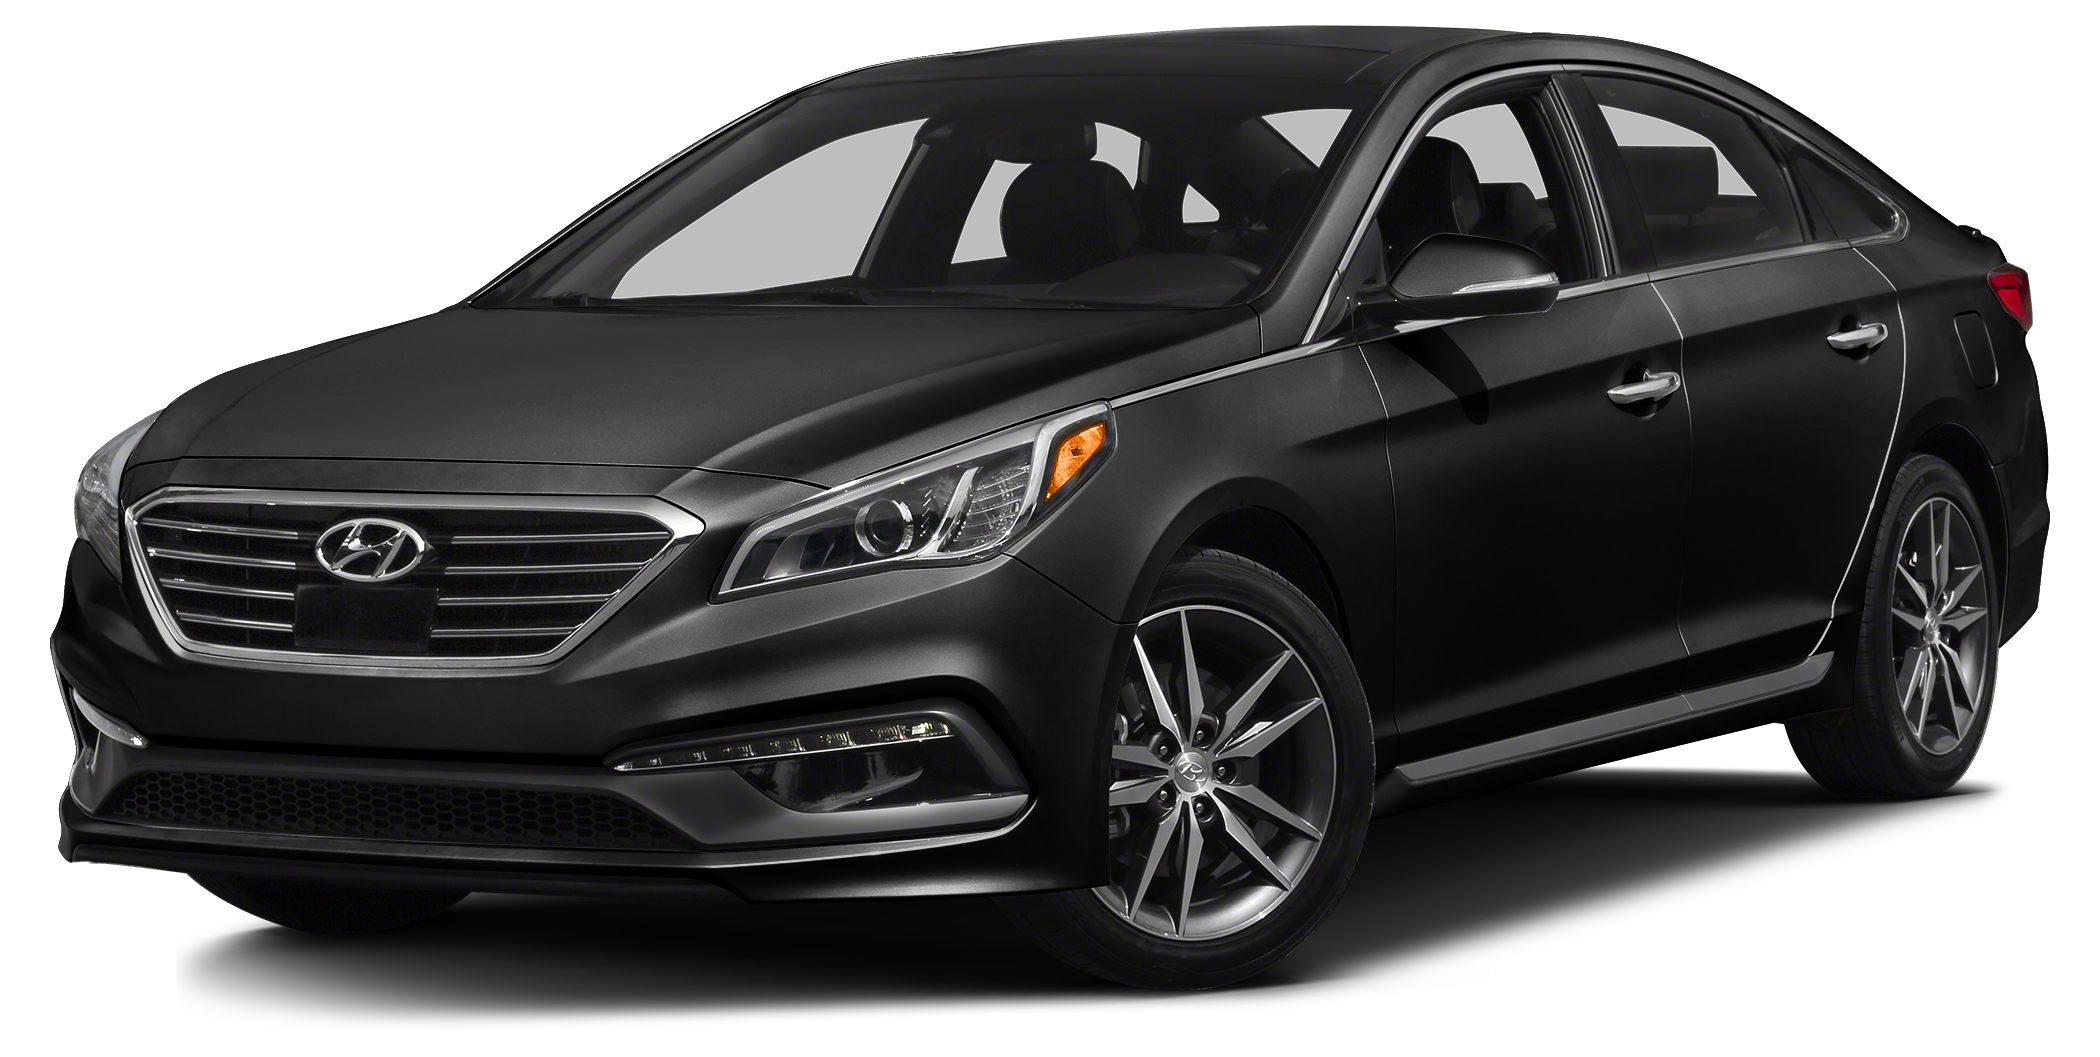 2015 Hyundai Sonata SE Hyundai Certified ---- just 15k miles on this one owner SE Sonata that come